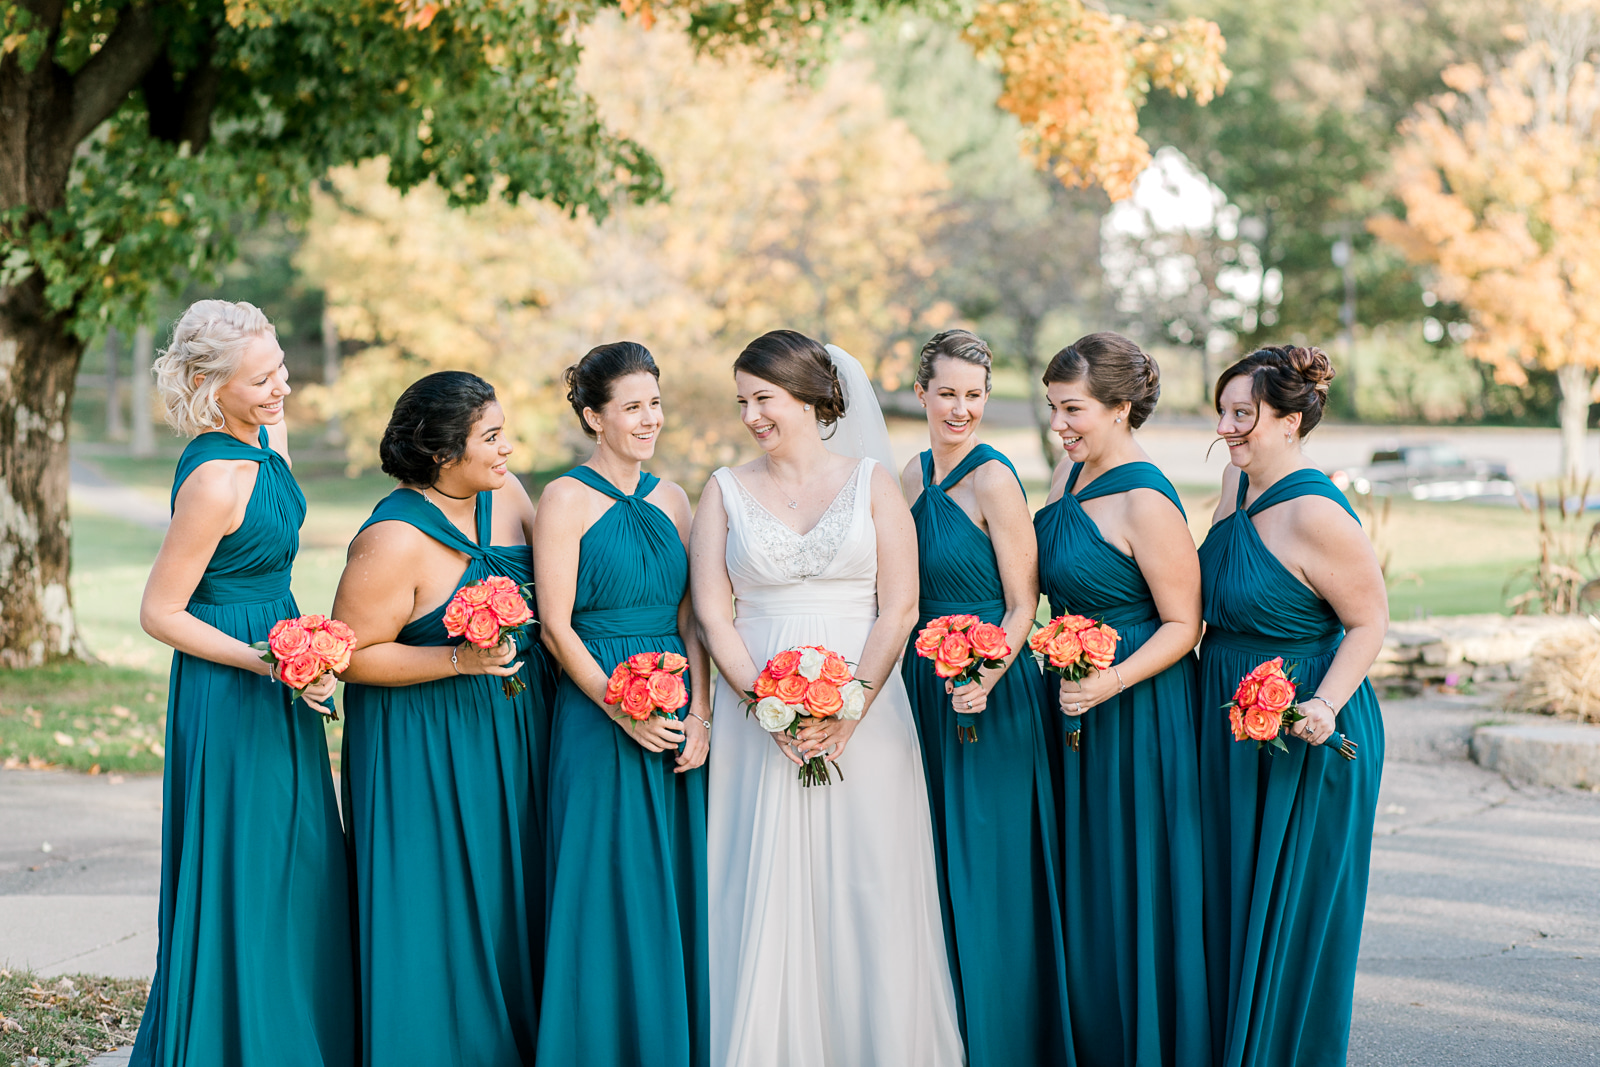 pleasant_valley_country_club_wedding_sutton_erica_pezente_photography (91).jpg